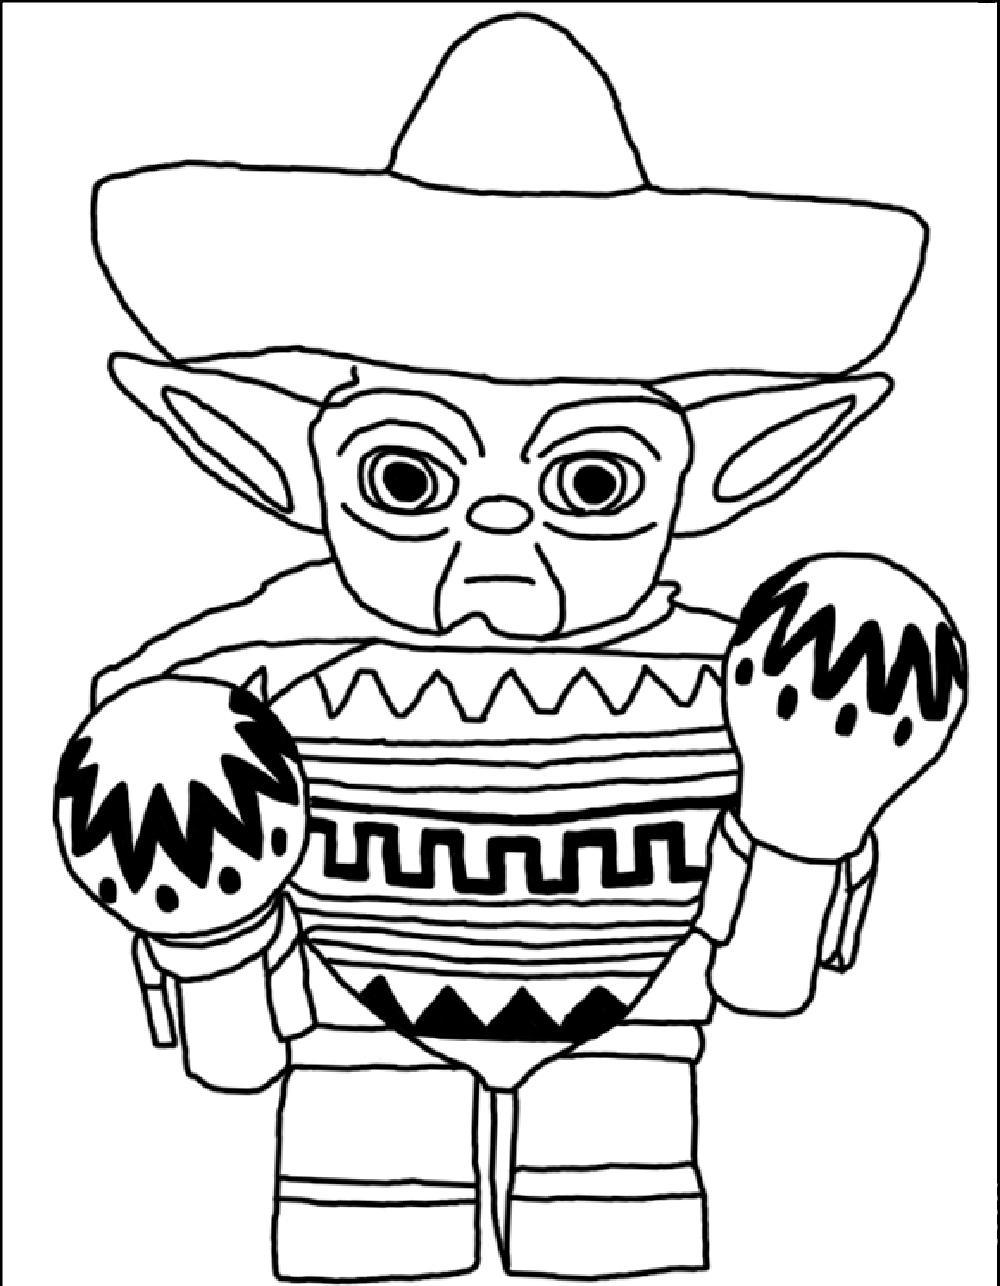 lego star wars colouring create your own lego coloring pages for kids lego wars star colouring 1 1